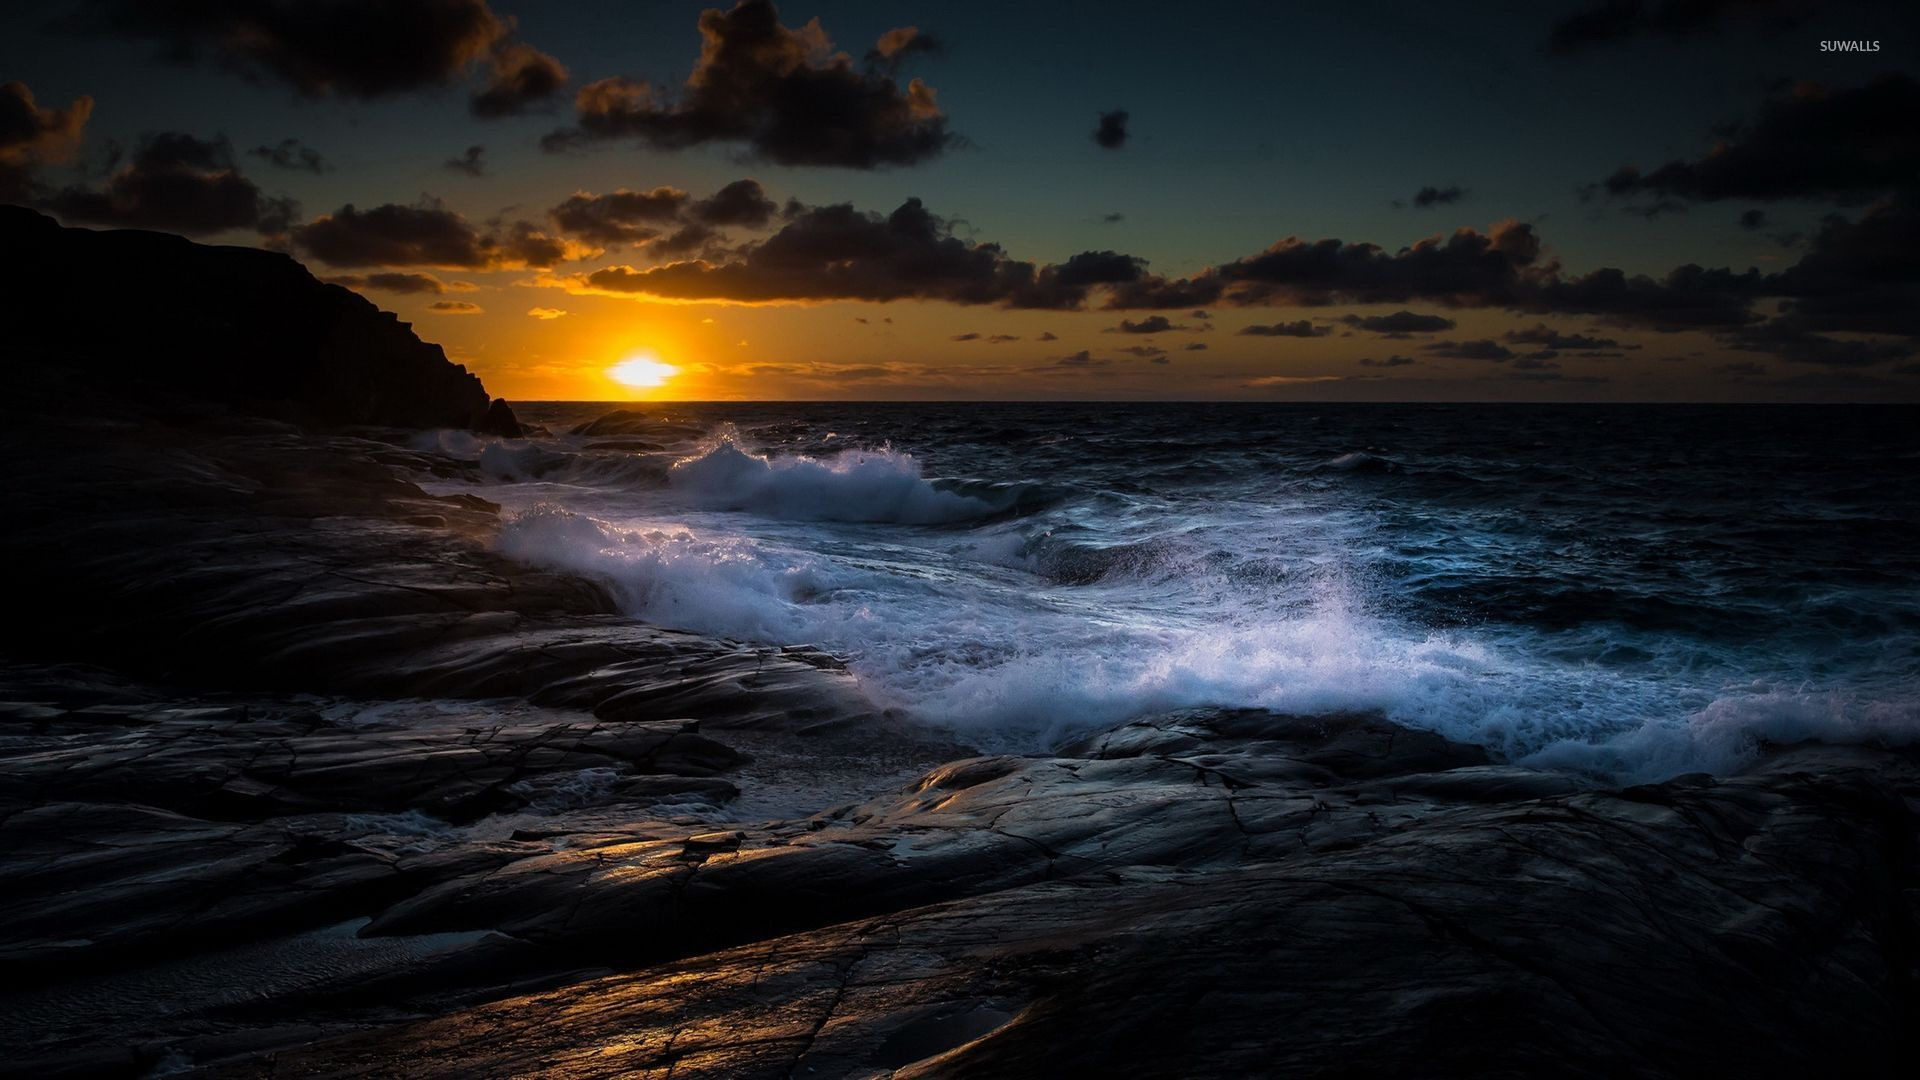 1920x1080 Waves fighting with the rocky shore at sunset wallpaper